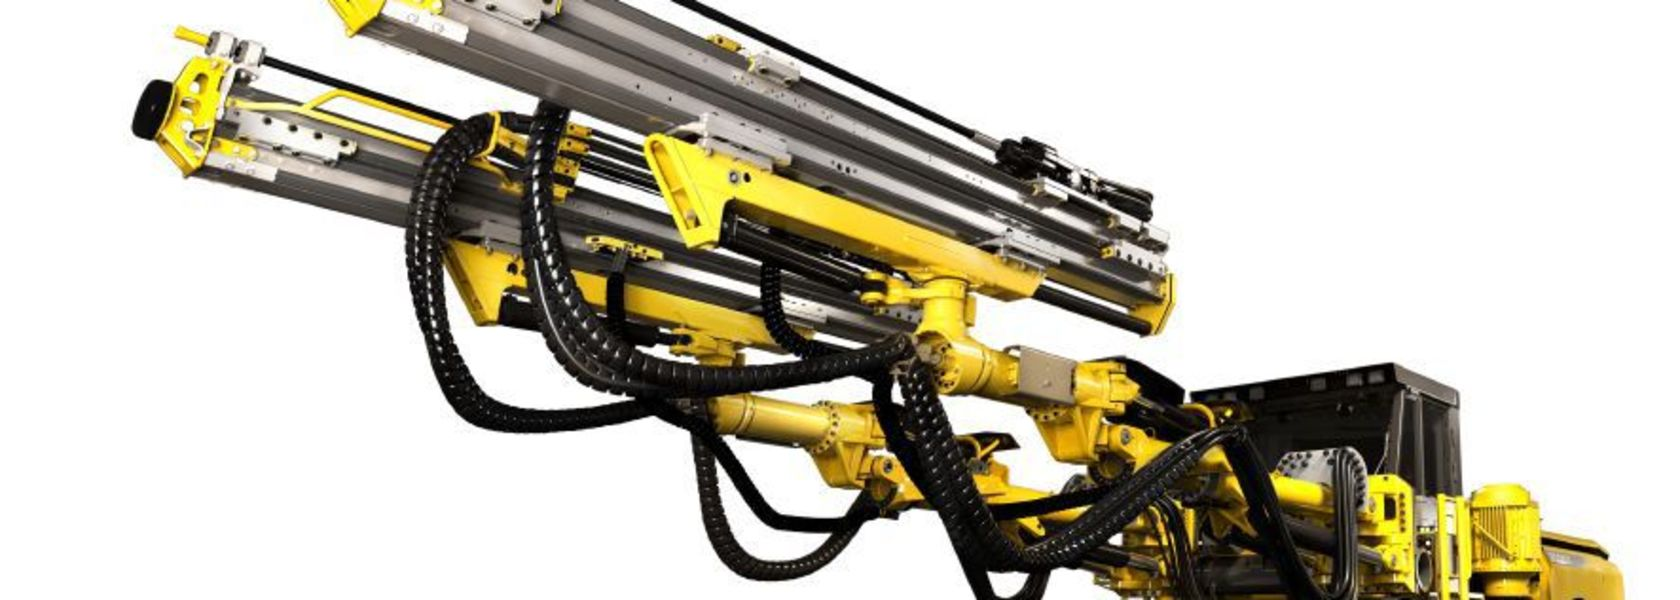 Atlas Copco launches reloaded face drilling rig